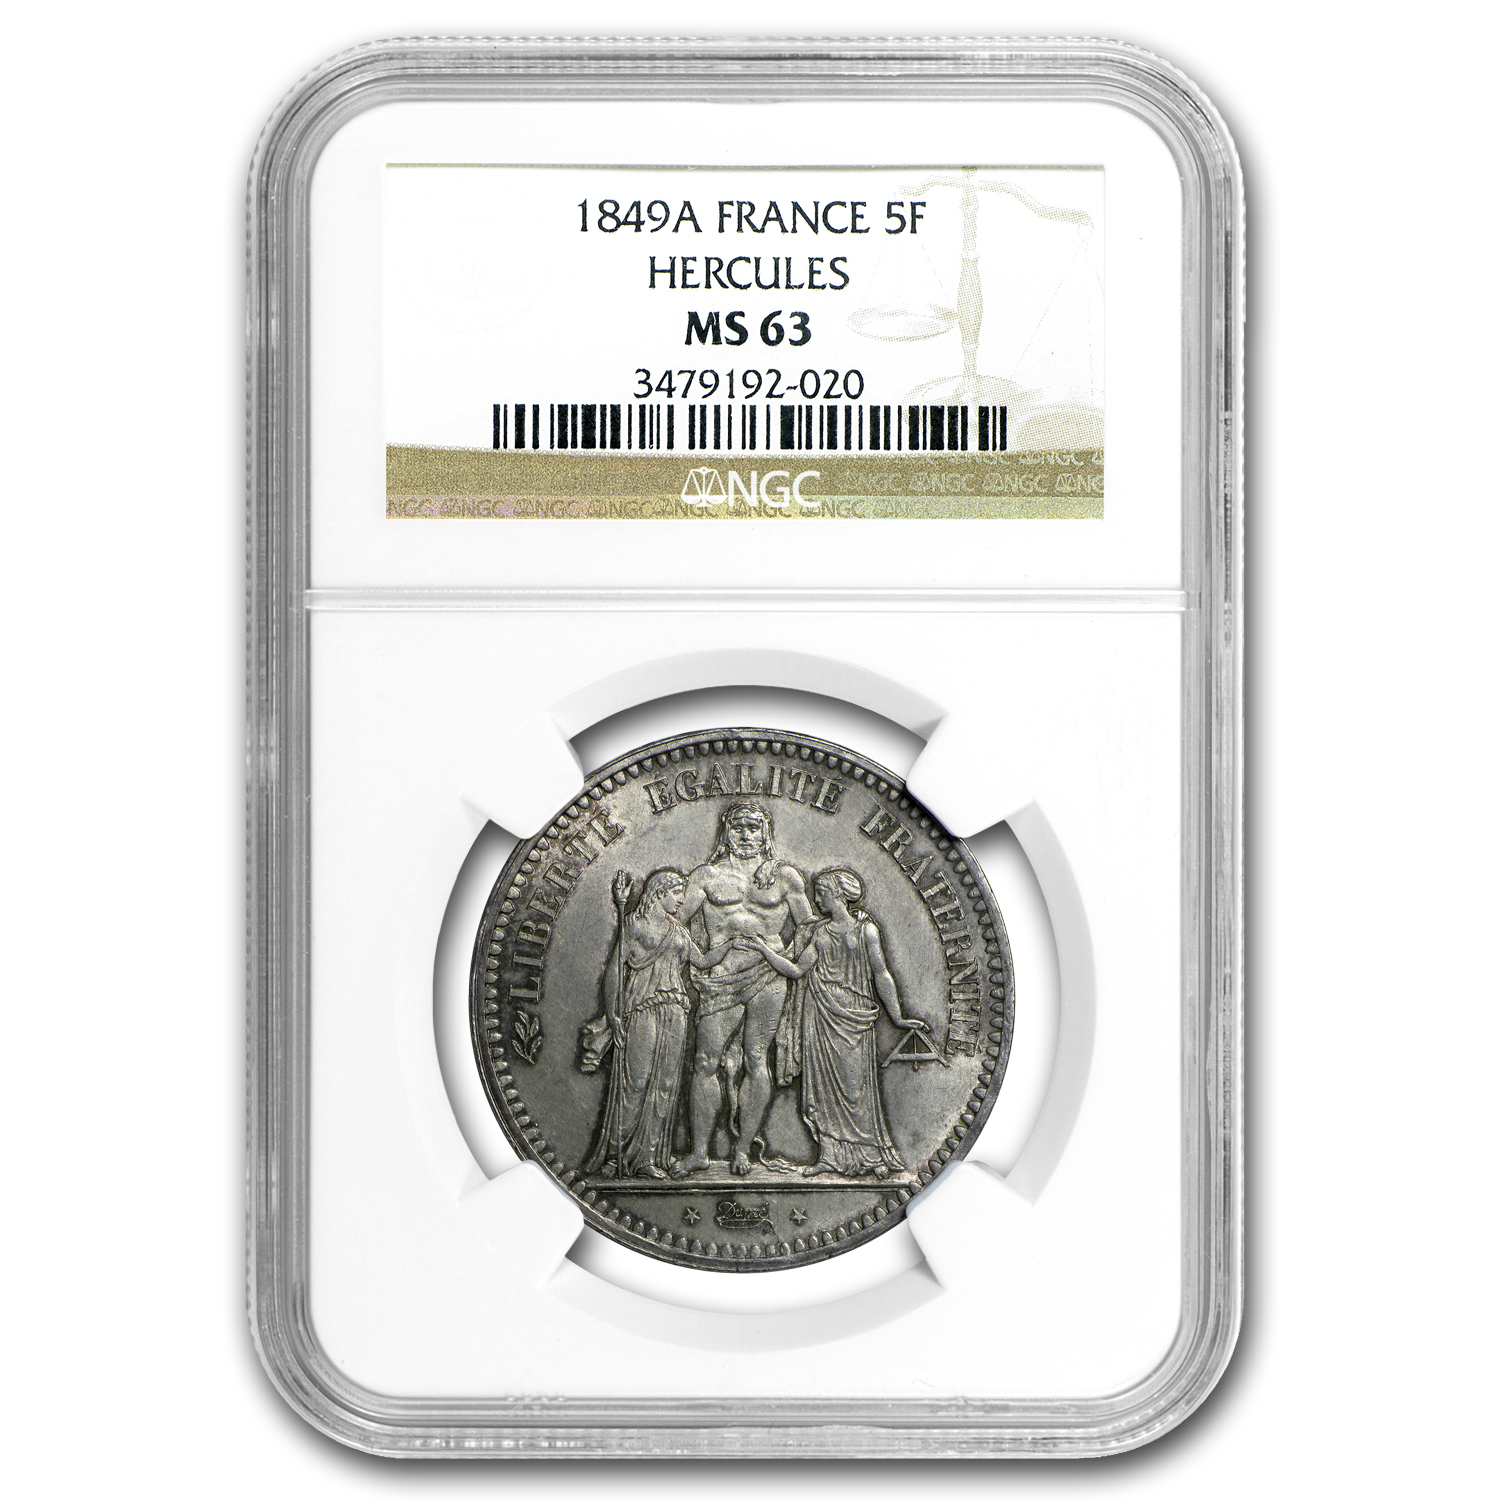 1849 France 5 Francs Hercules MS-63 NGC